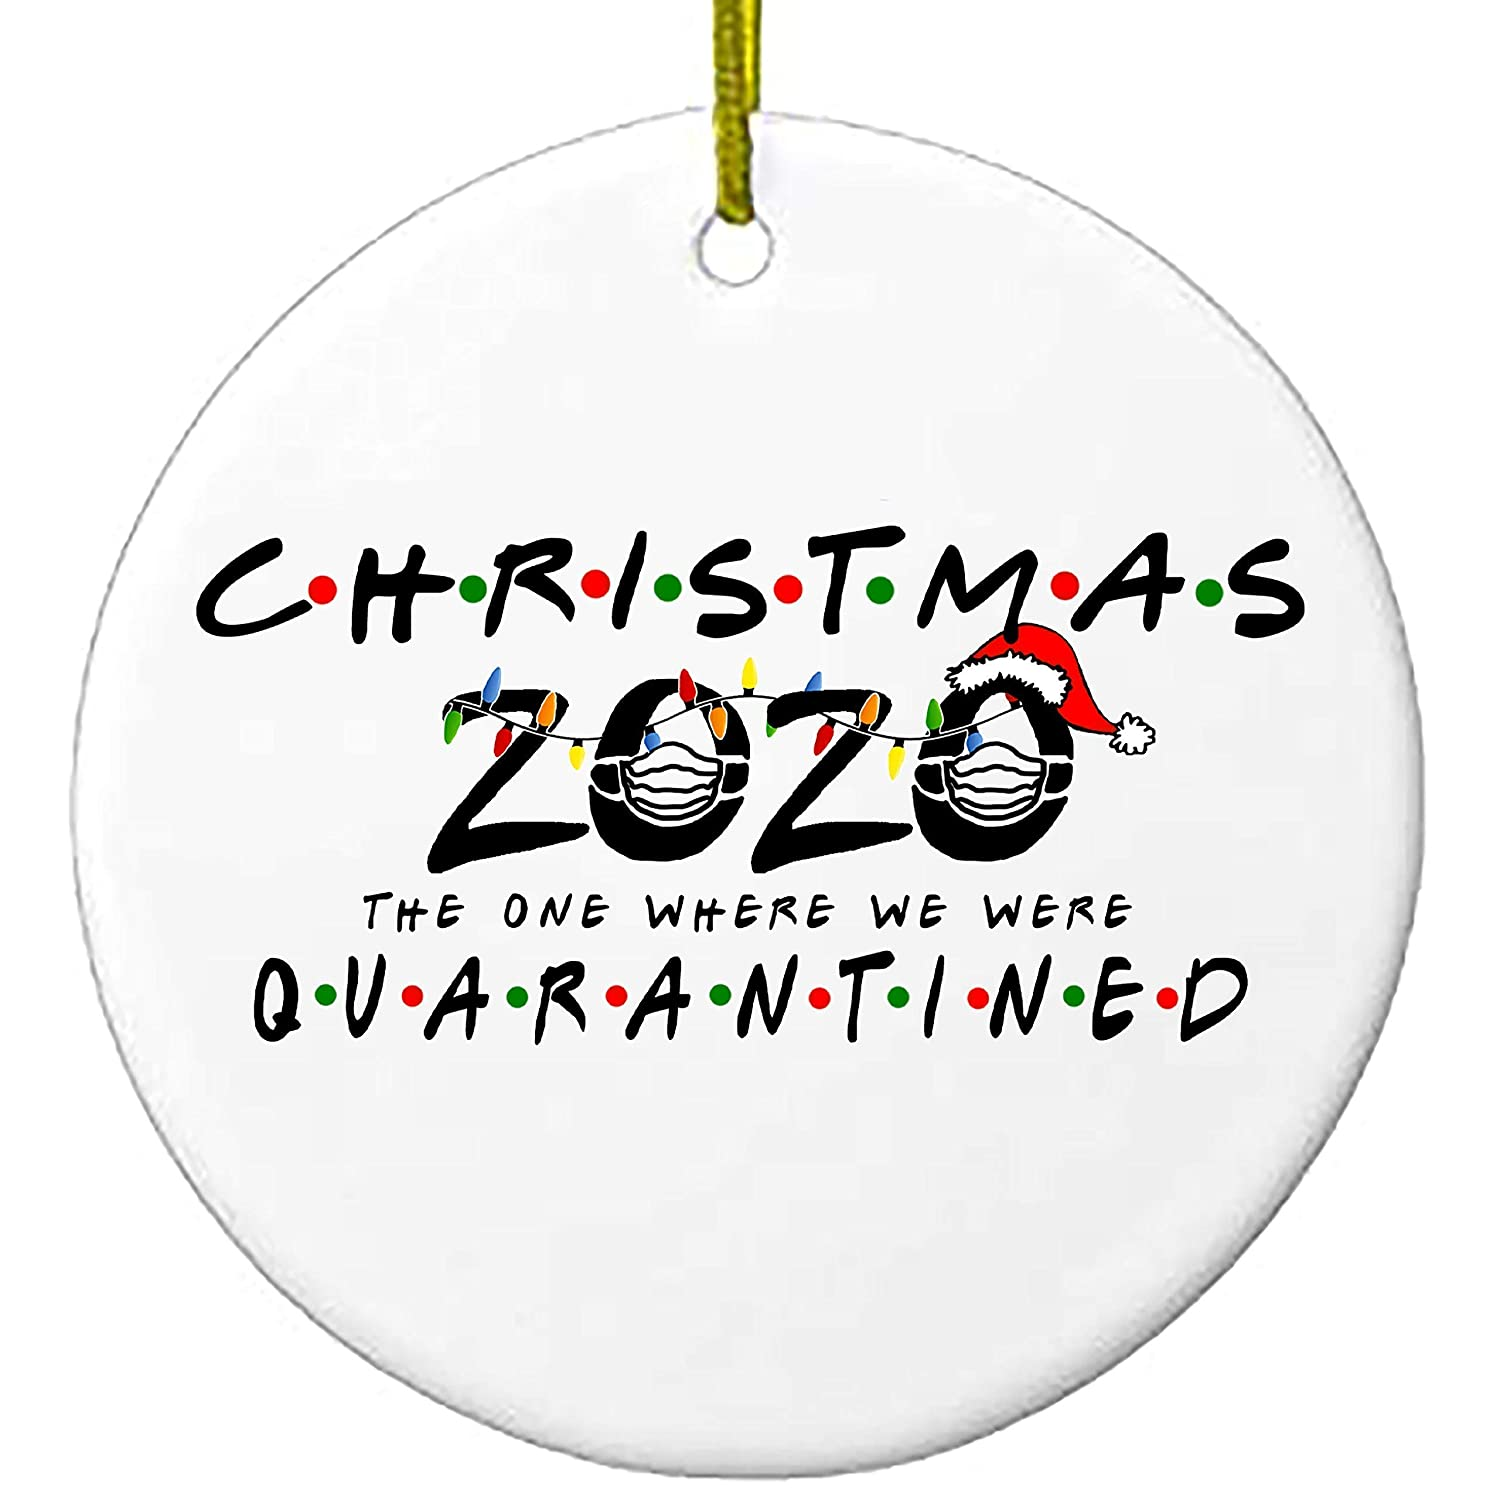 Friends Quarantine Merry Christmas Ornaments Gift Serenity Home Goods Social Distancing Funny Novelty Ceramic Holiday Decor Holiday XMAS Tree Ornament 2020 The One Where We Were Quarantined